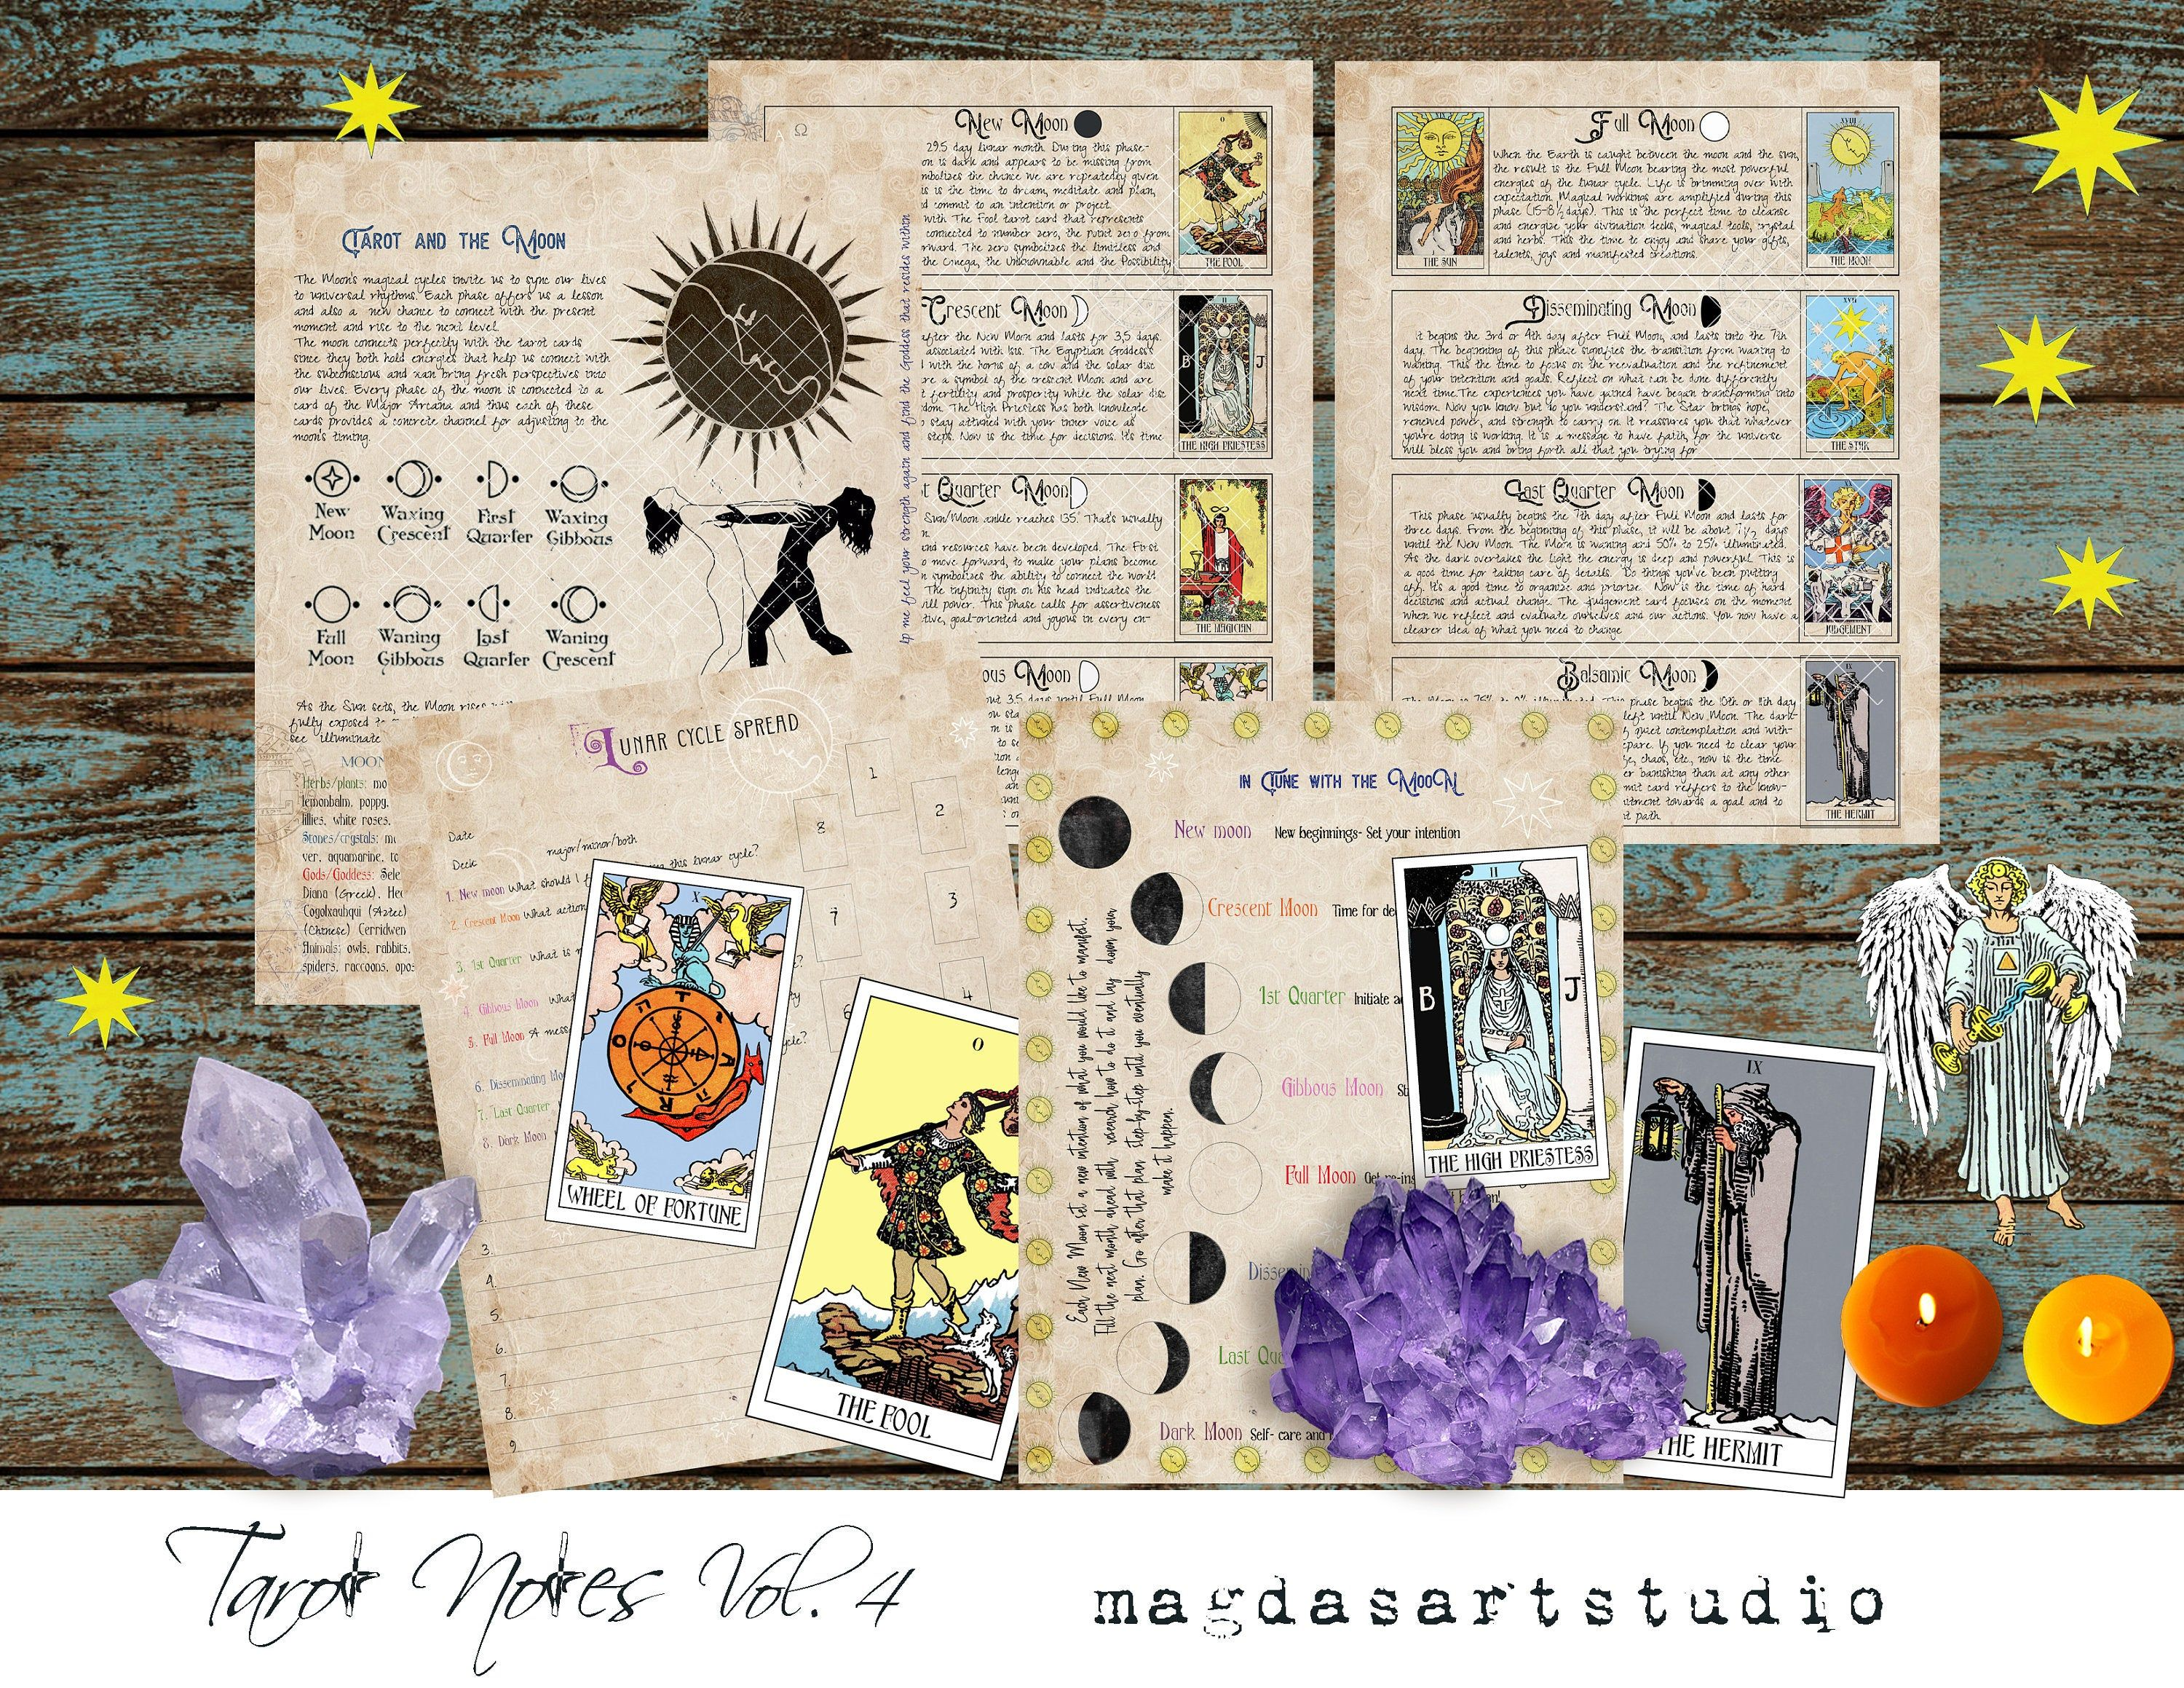 Tarot Notes Vol 4 Tarot And The Moon Printable Pages